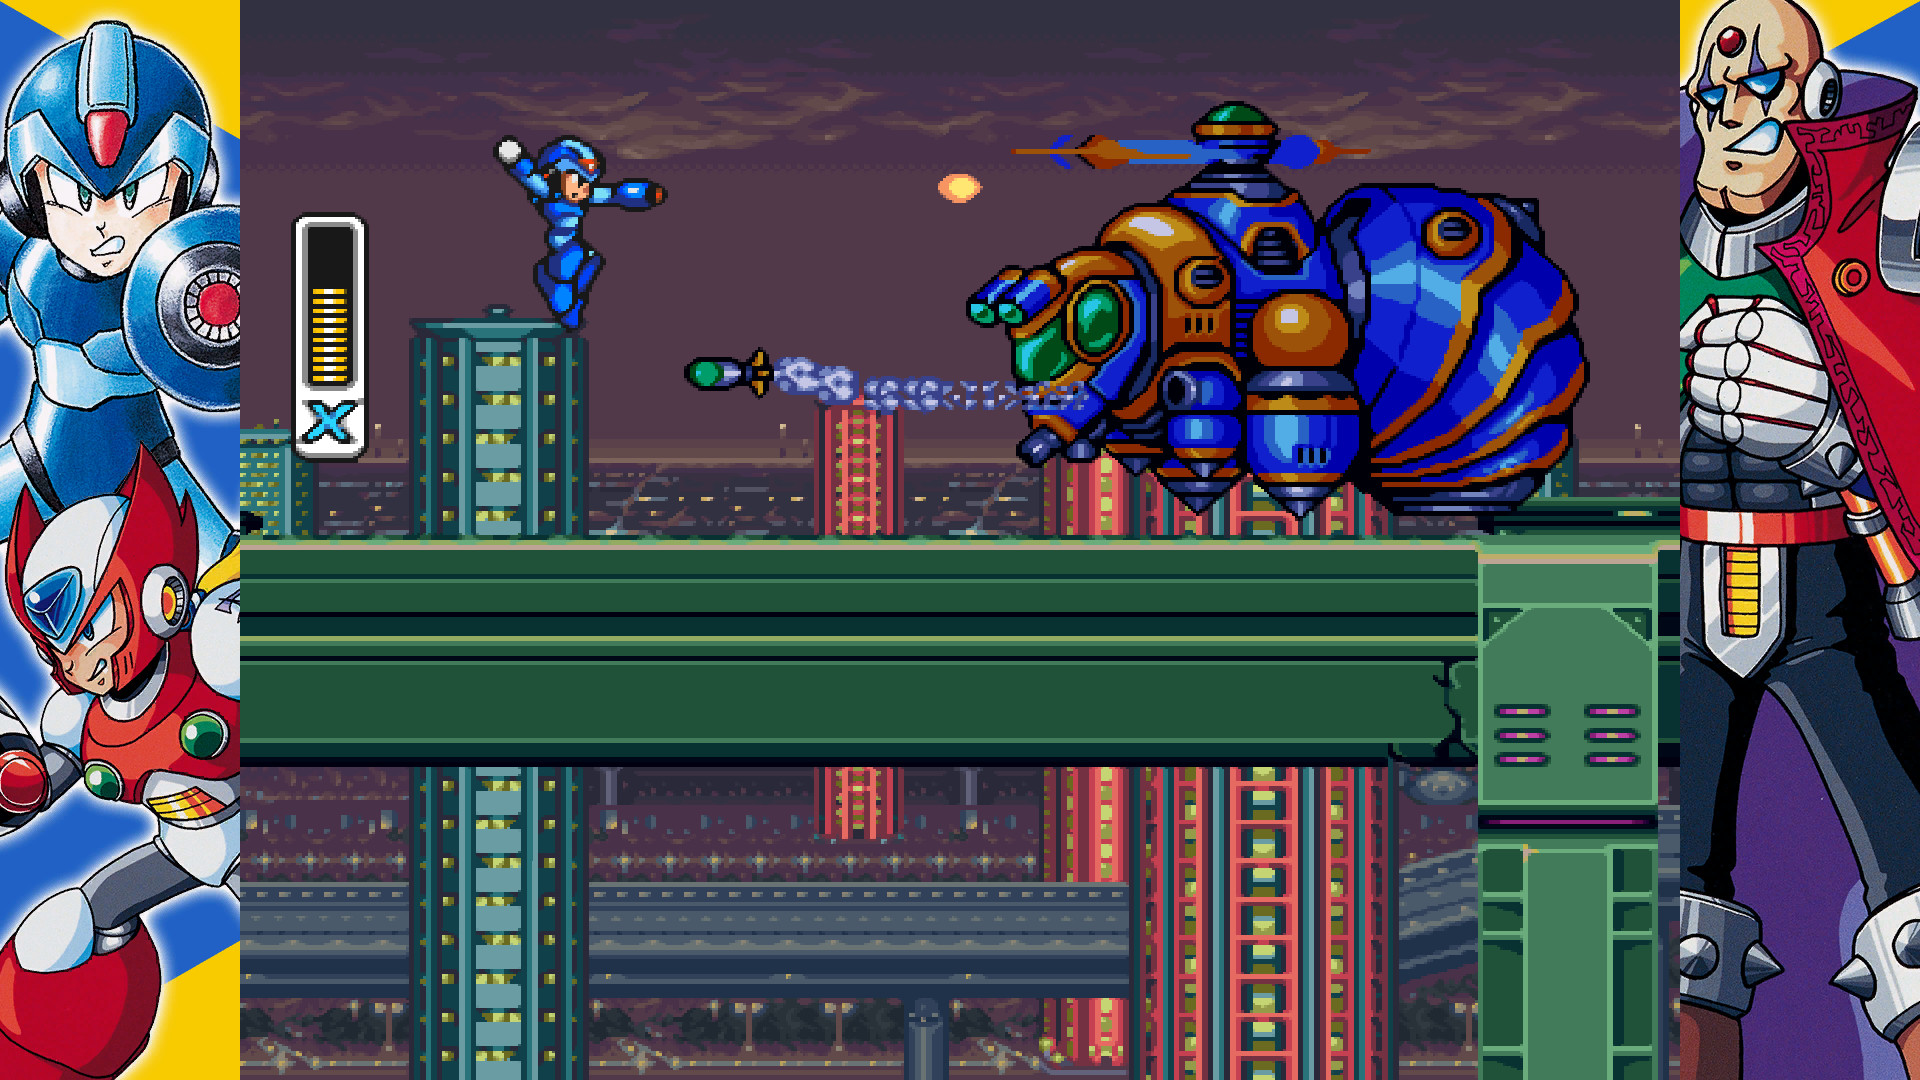 Image result for Megaman x legacy collection 1920x1080